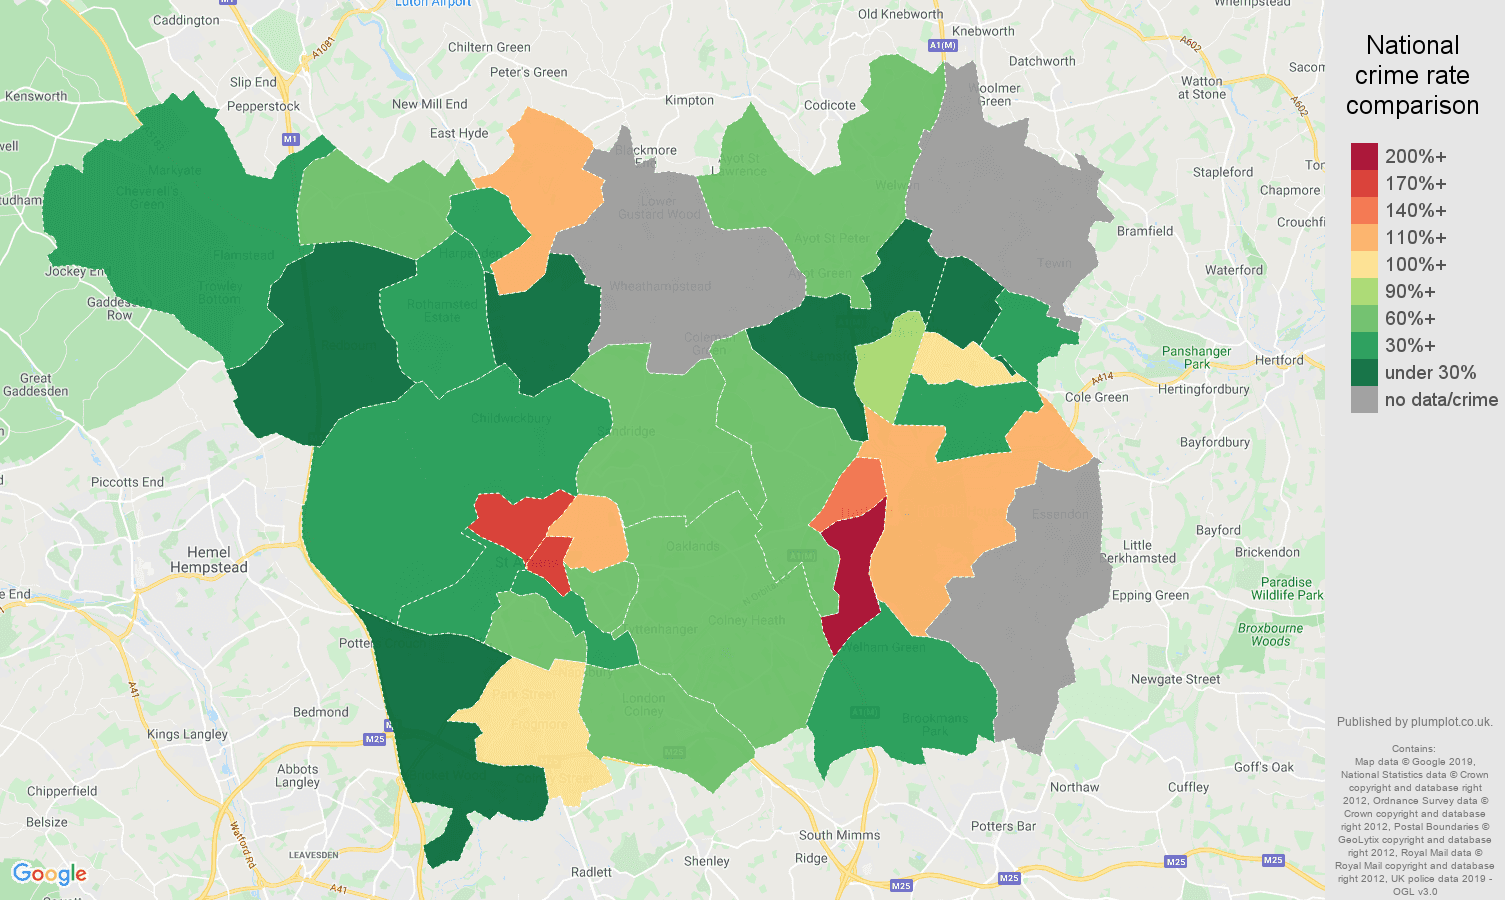 St Albans possession of weapons crime rate comparison map